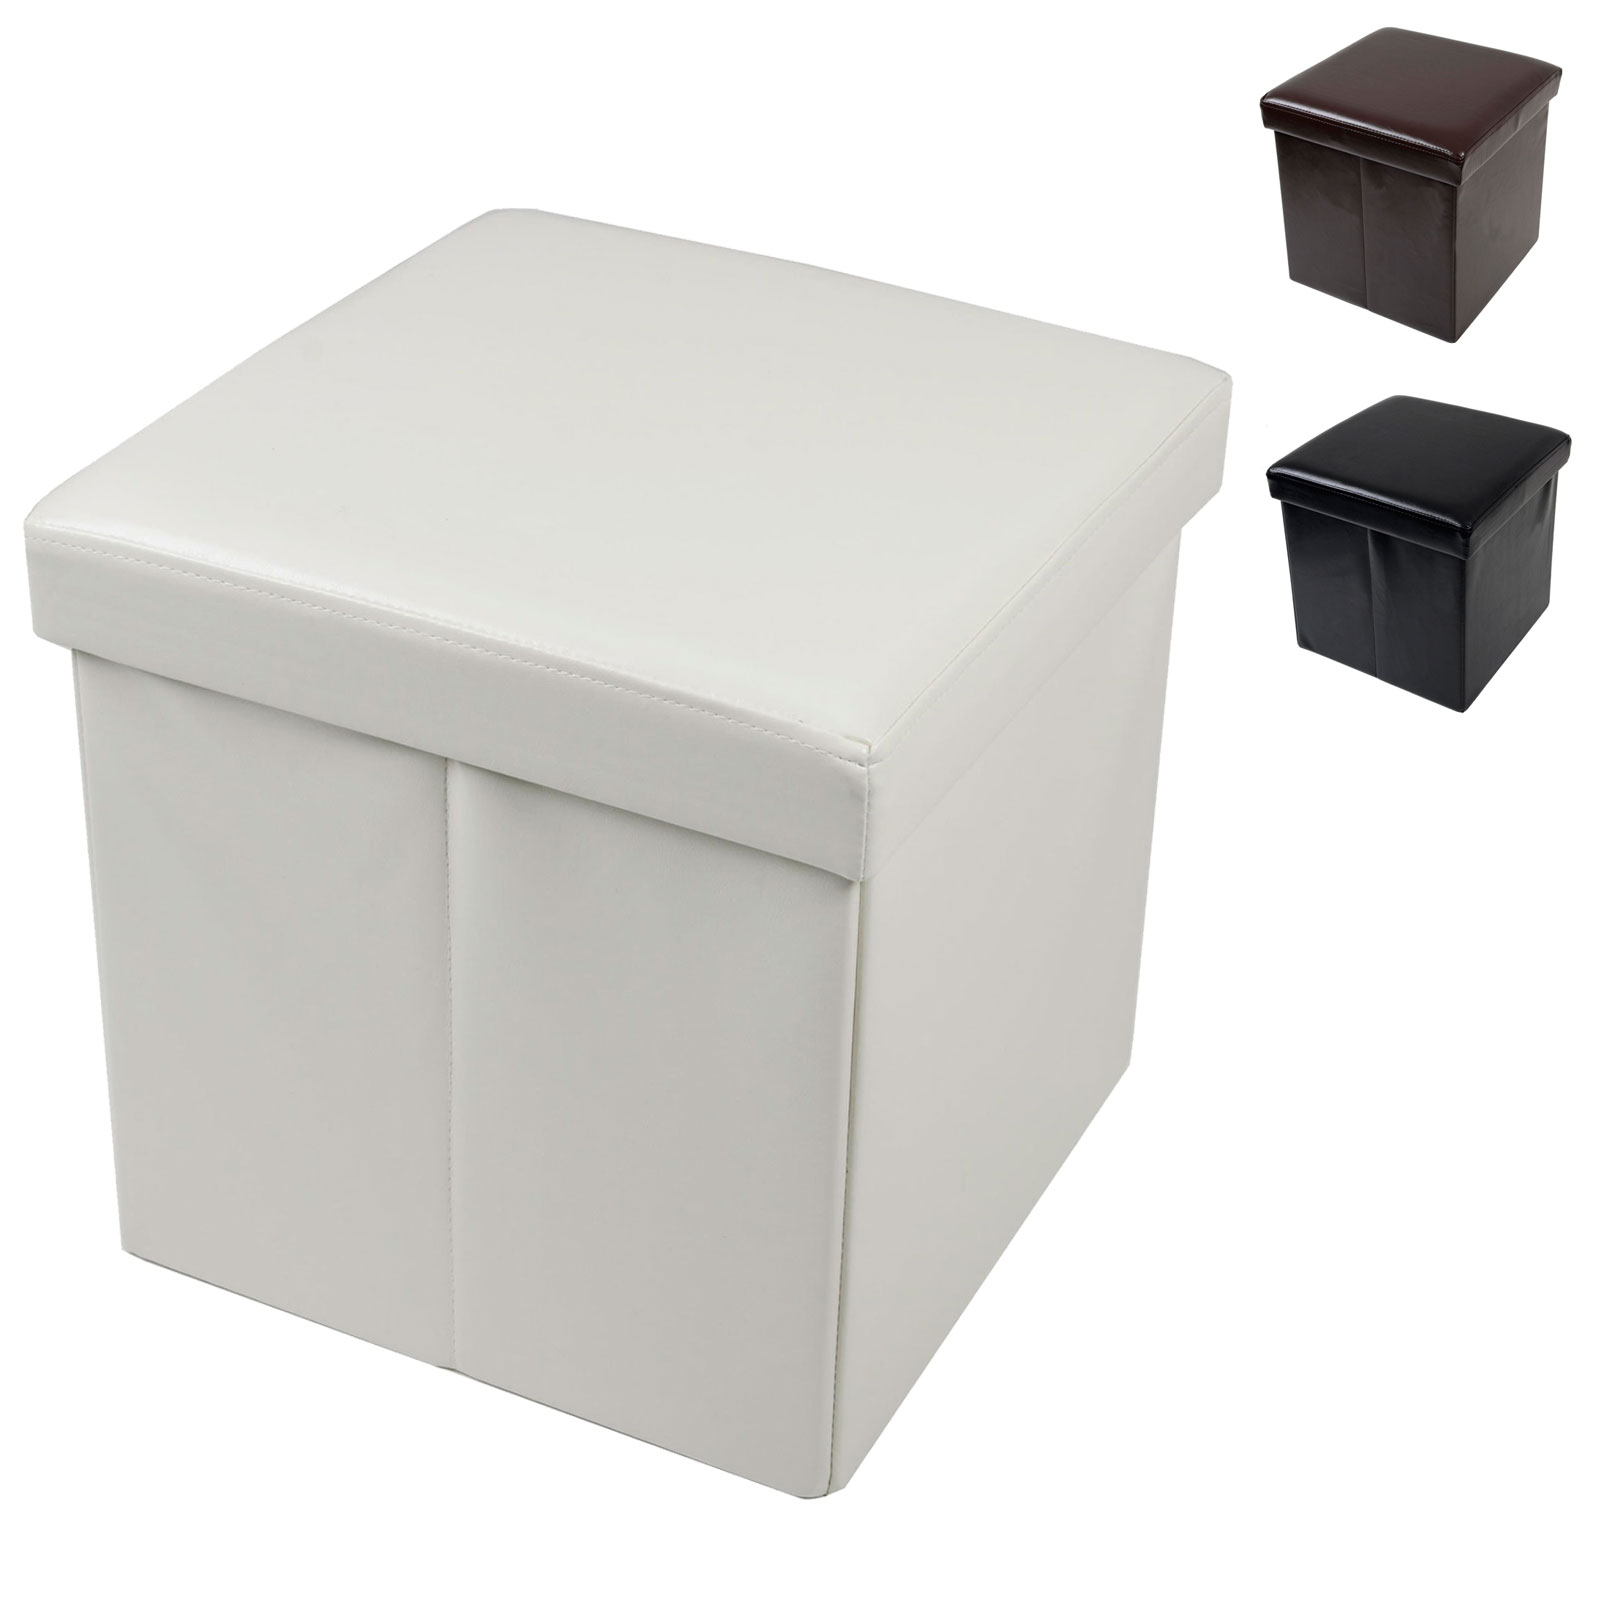 folding storage stool with lid faux leather 37cm cube box pouffe seat ottoman ebay. Black Bedroom Furniture Sets. Home Design Ideas